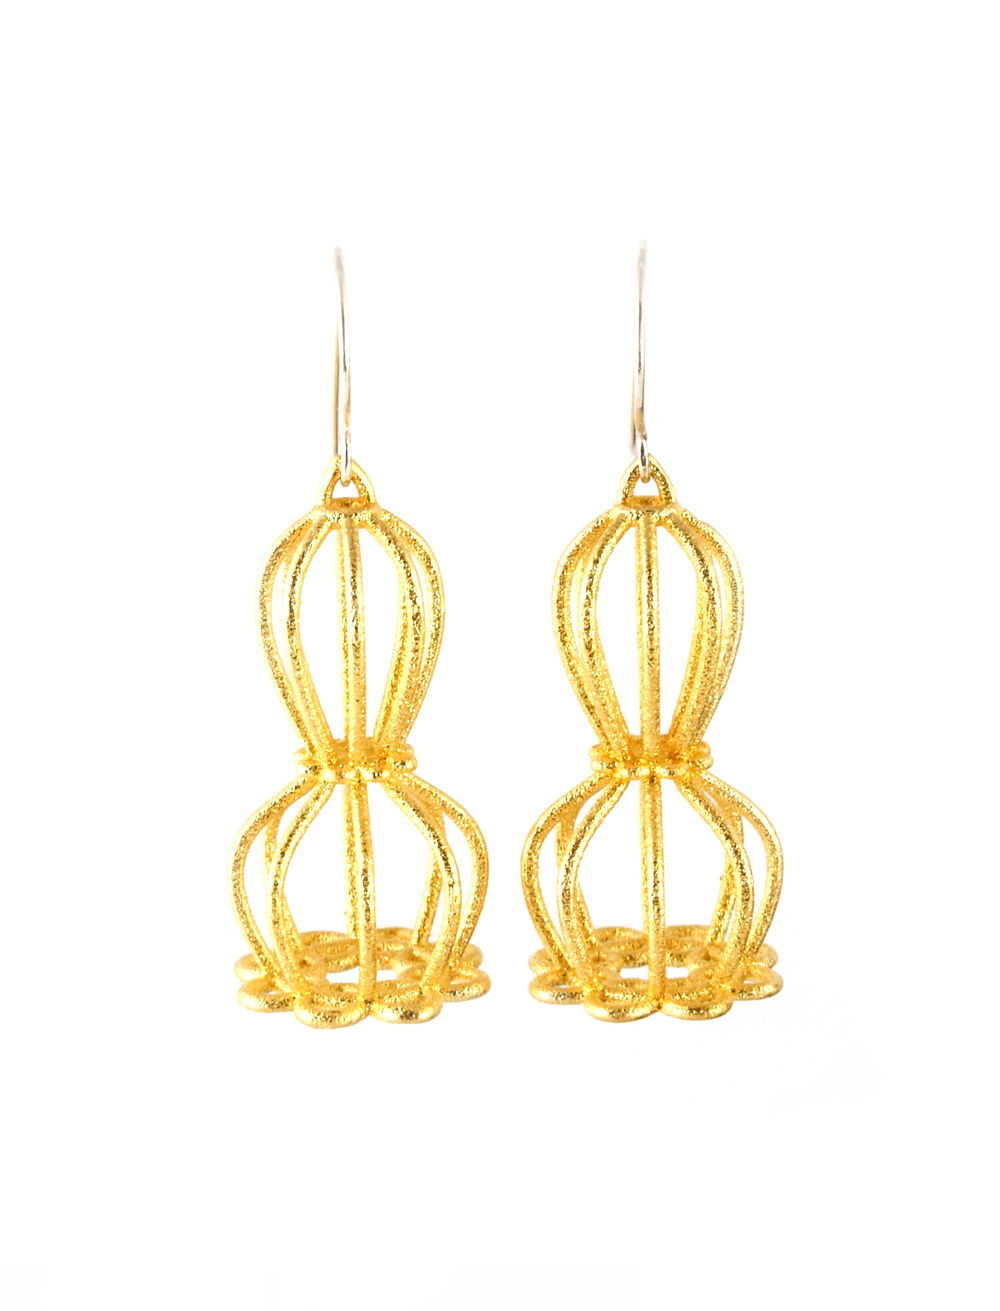 3D Doily Dangle gold plated.jpg